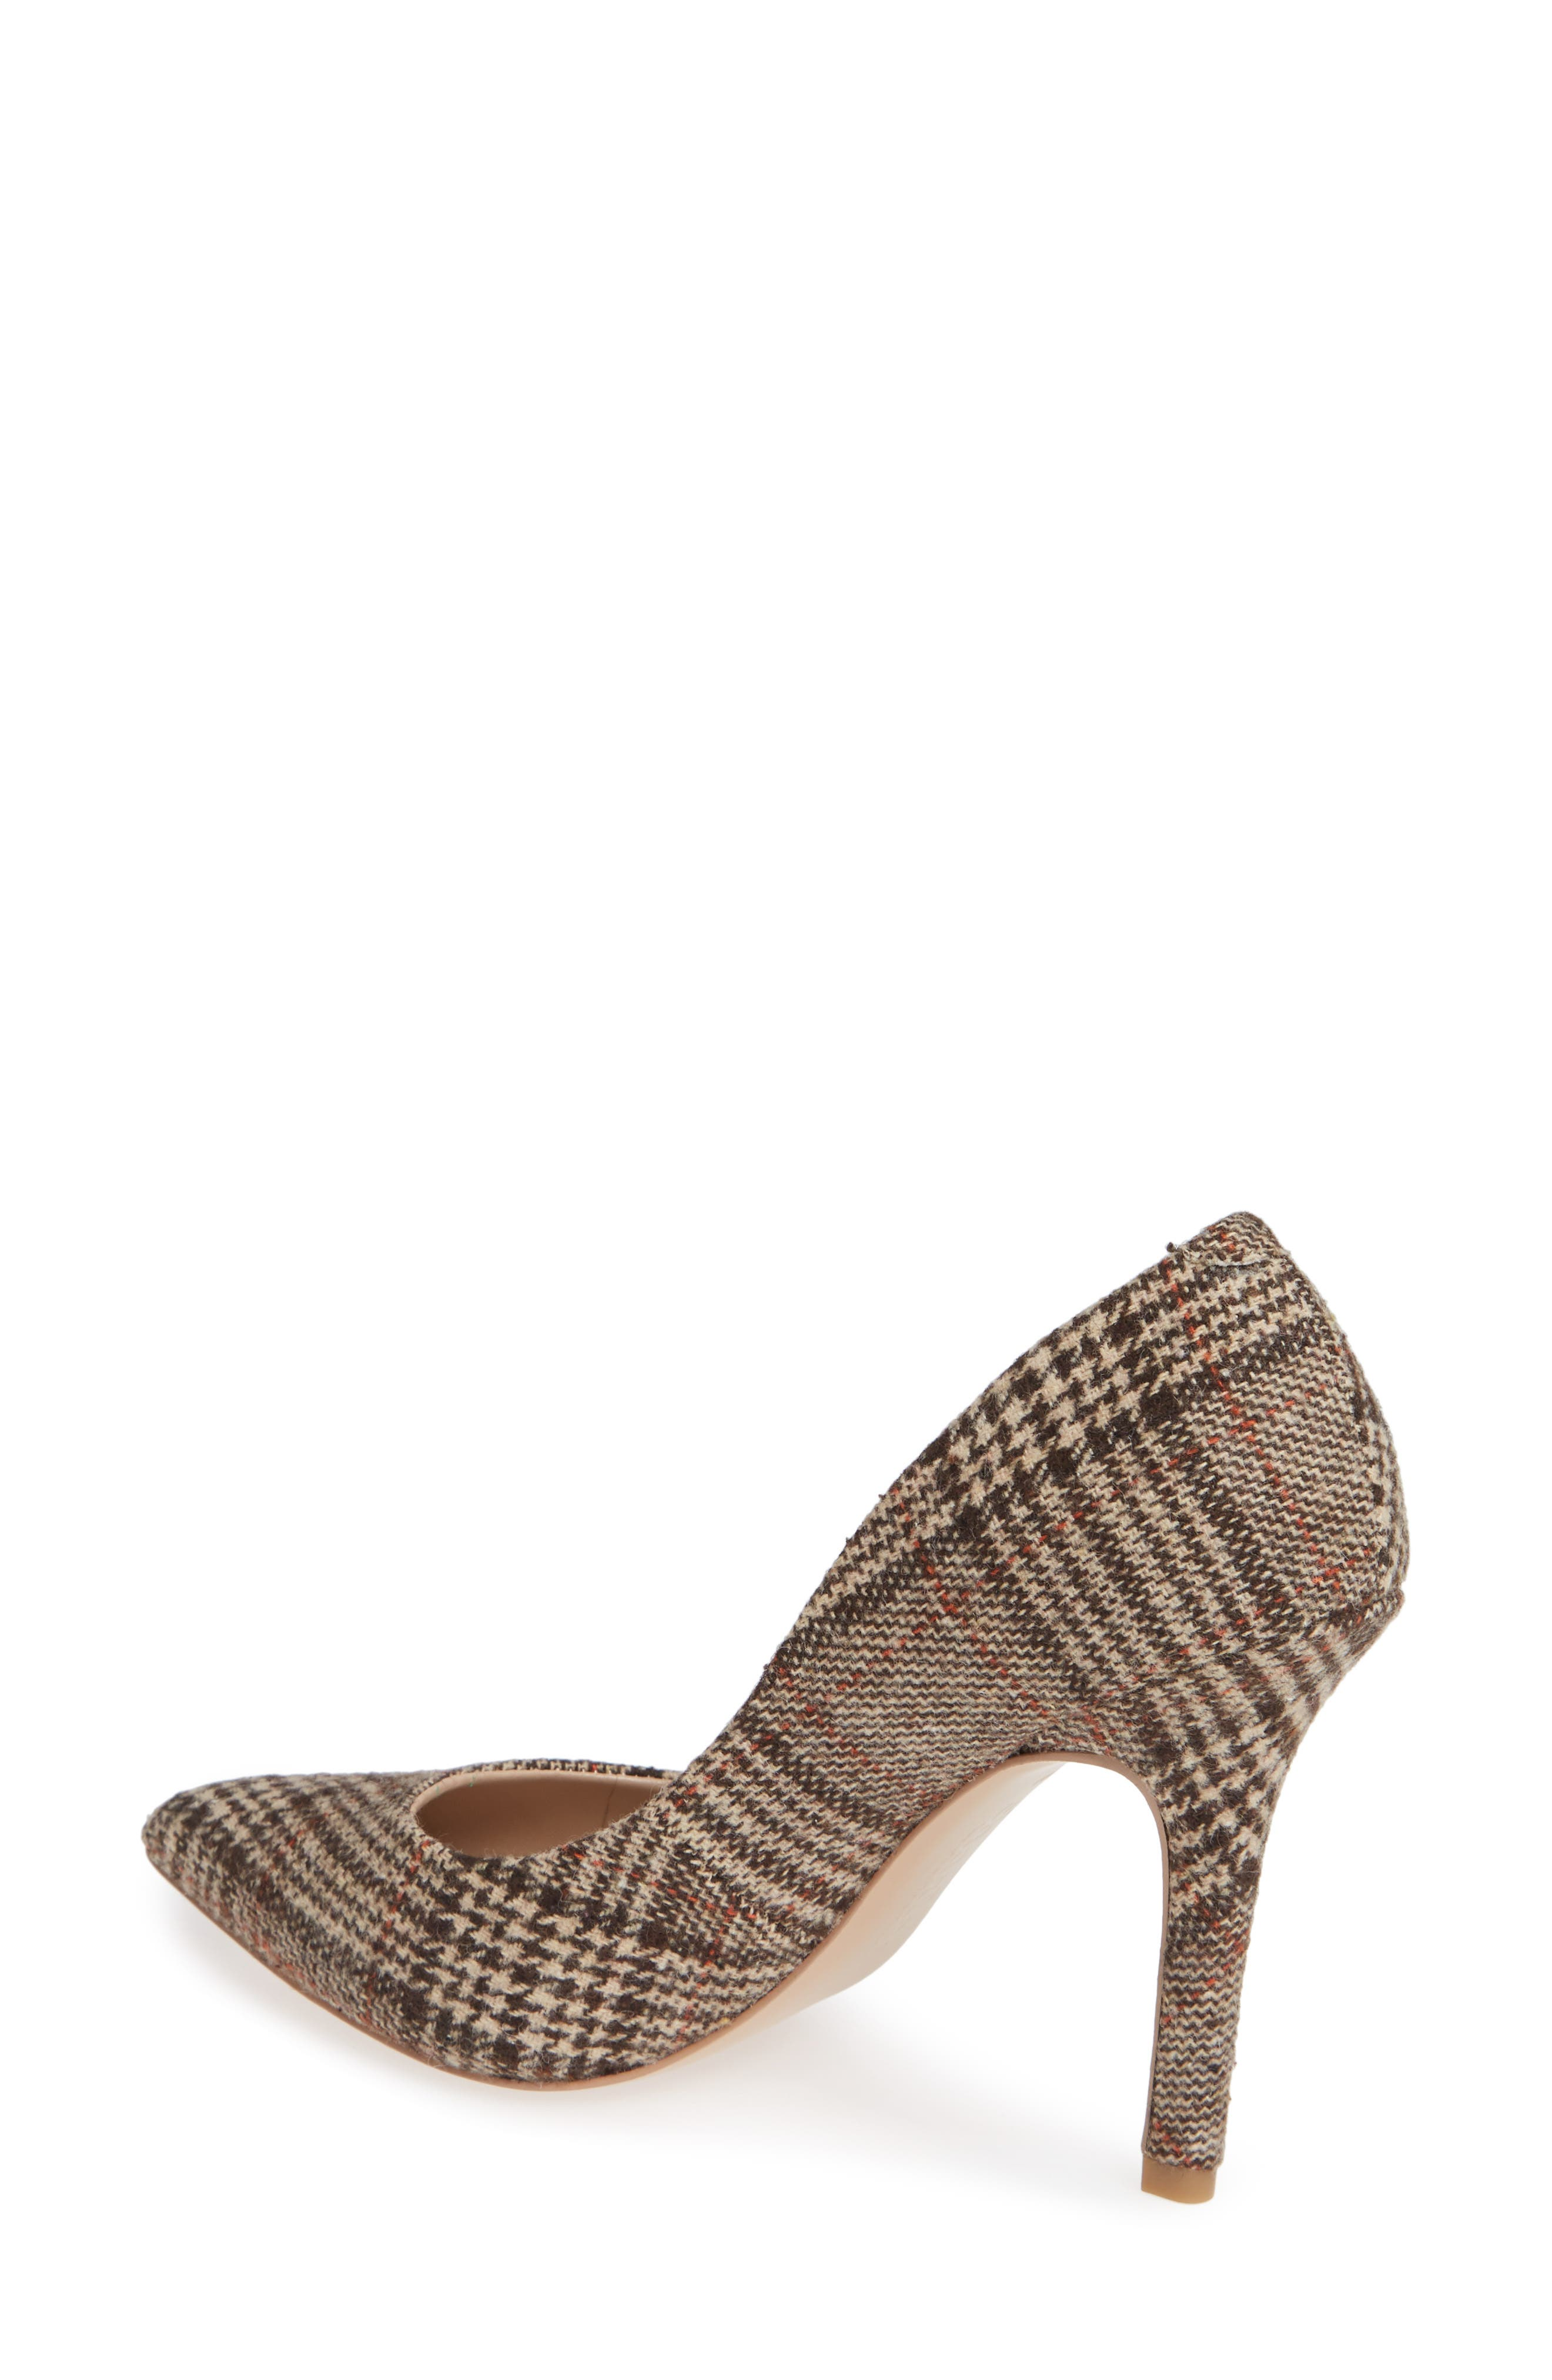 CHARLES BY CHARLES DAVID, Maxx Pointy Toe Pump, Alternate thumbnail 2, color, BROWN PLAID FABRIC